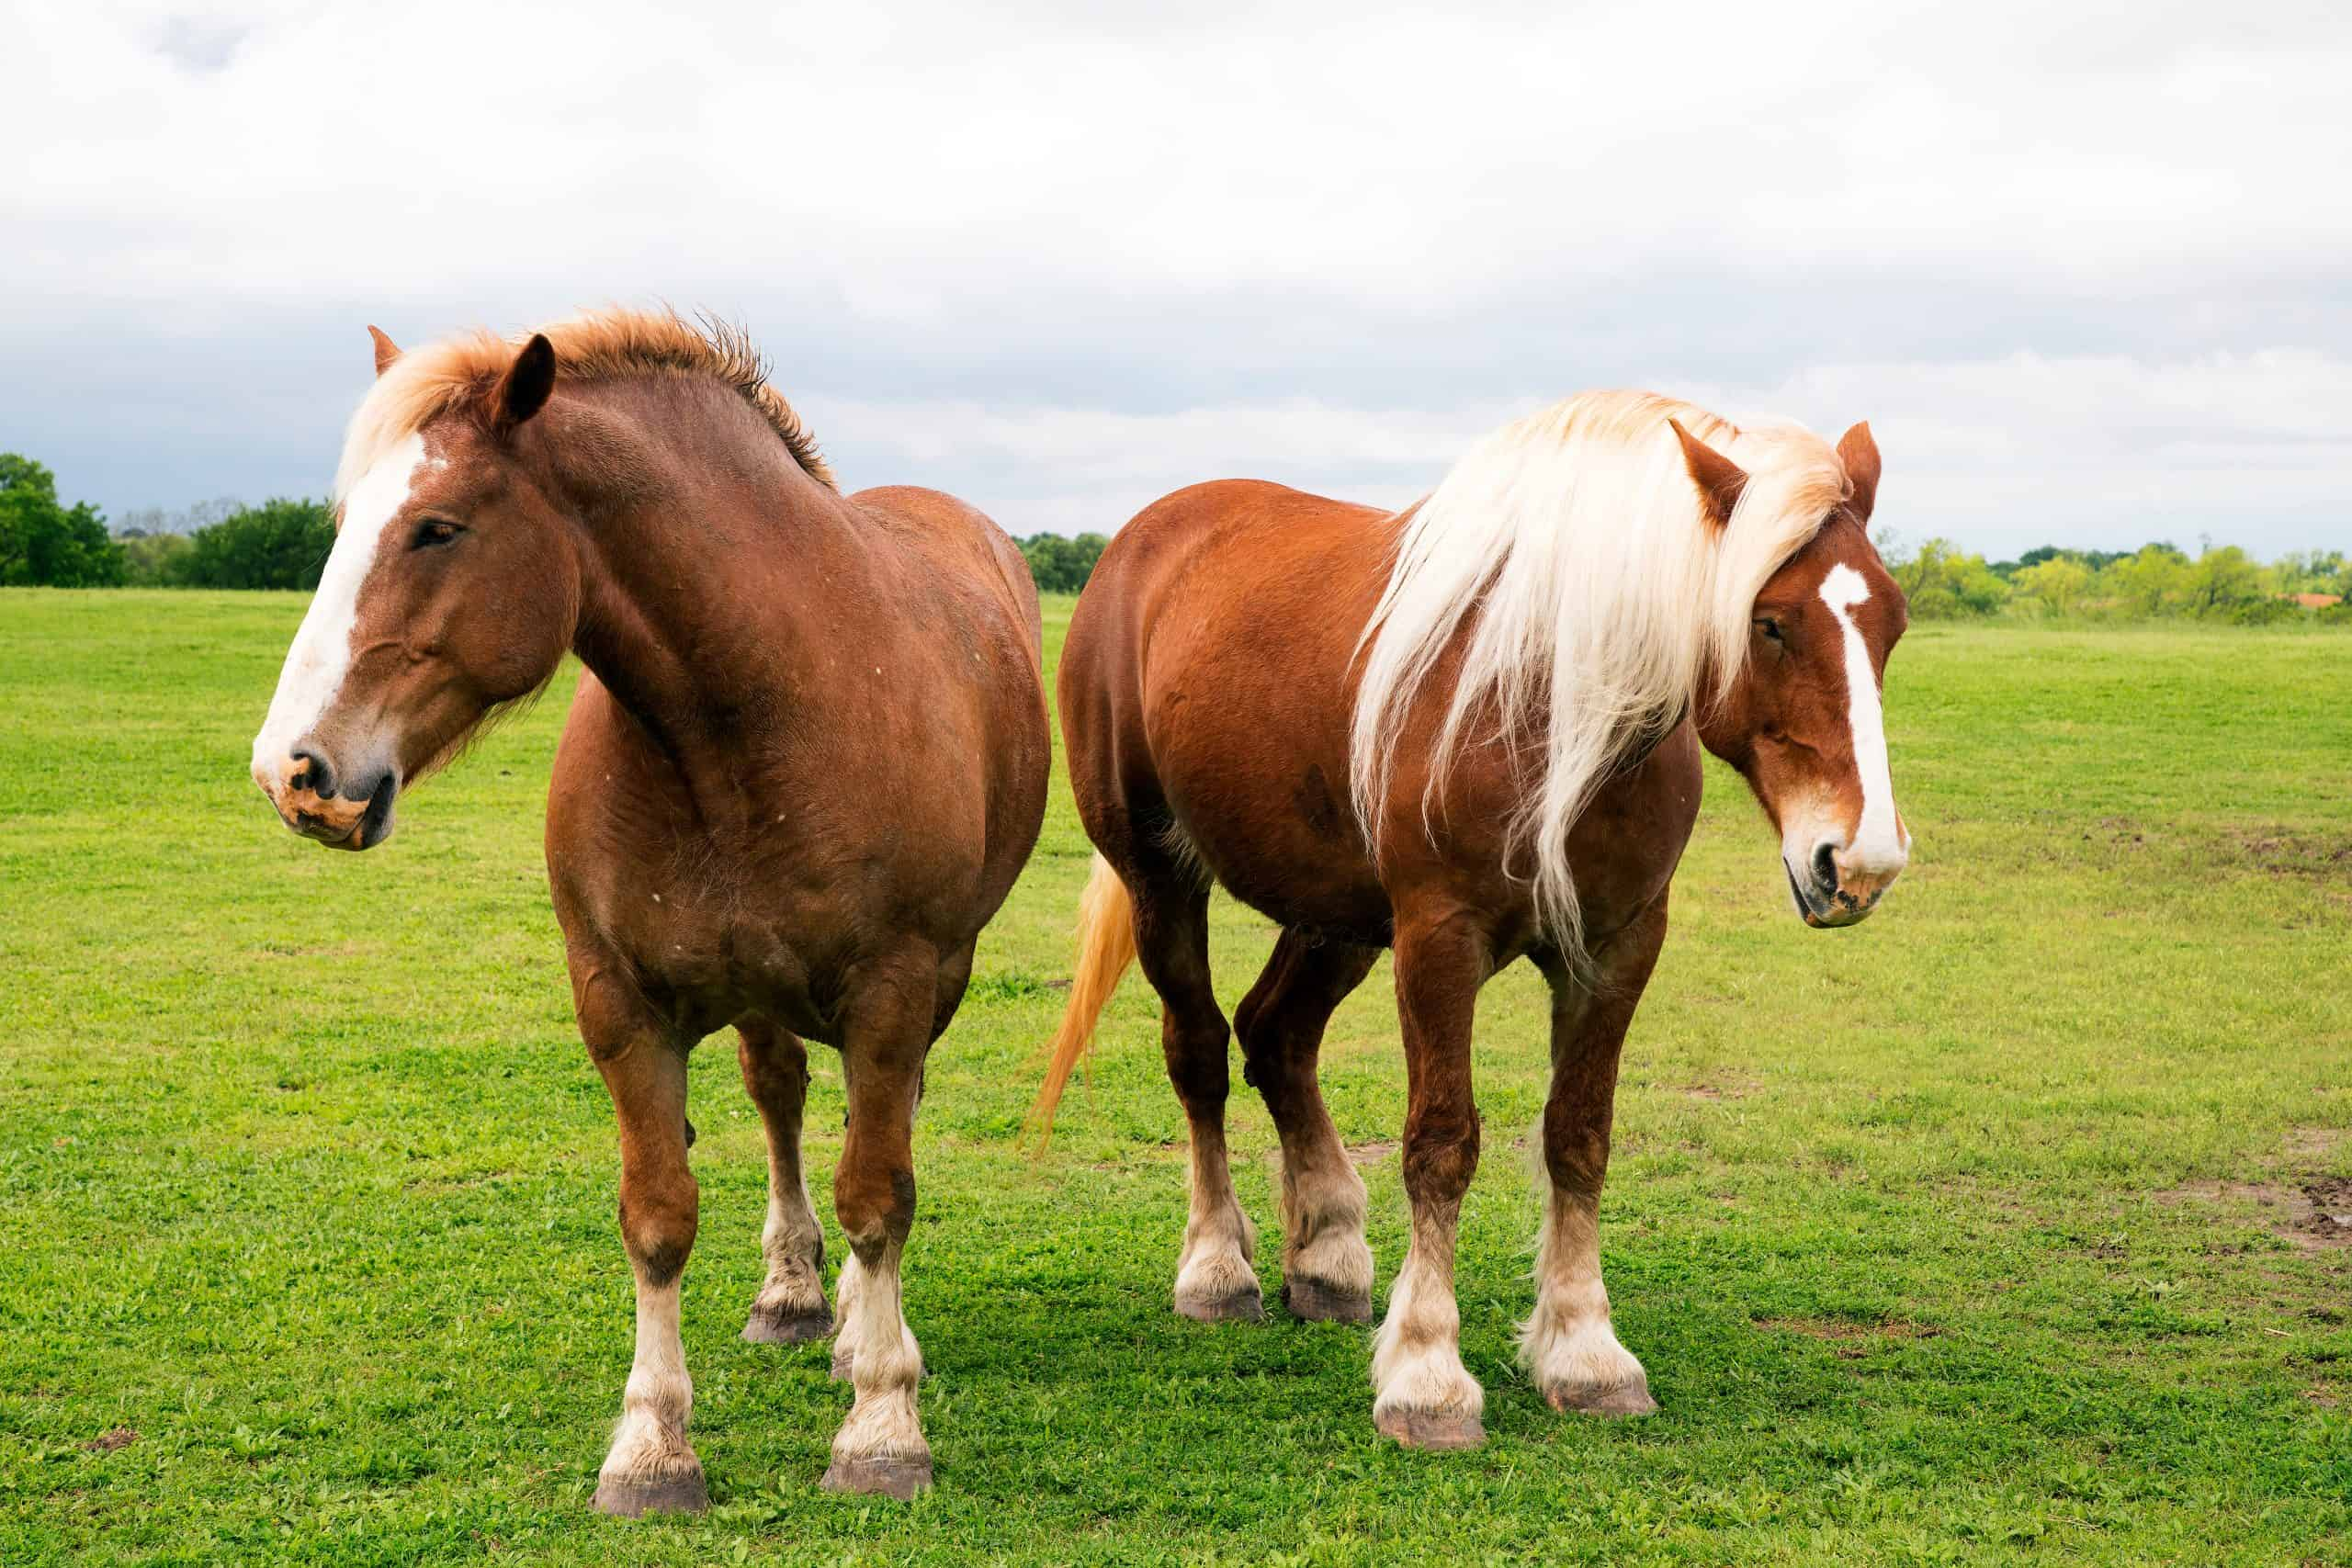 5 Of The Biggest Horse Breeds In The World